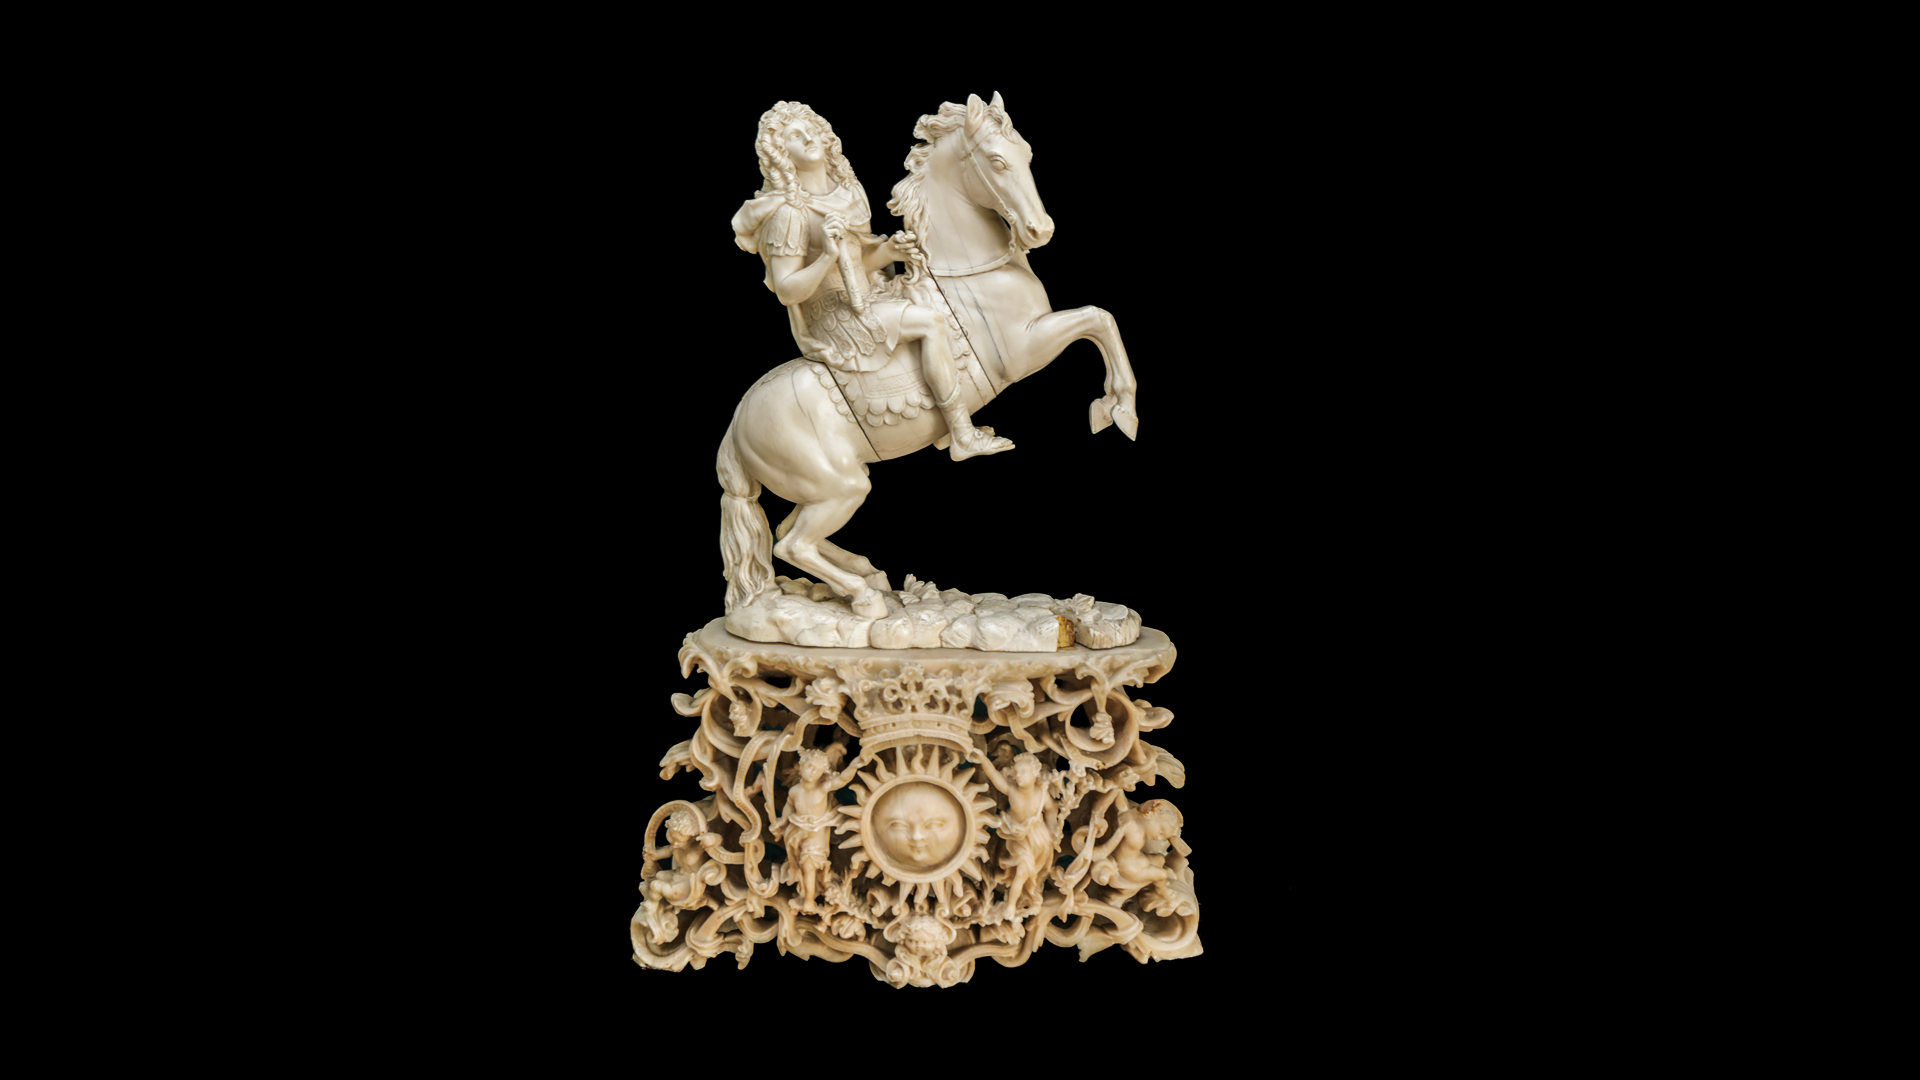 Louis XIV on a horse, 17th century